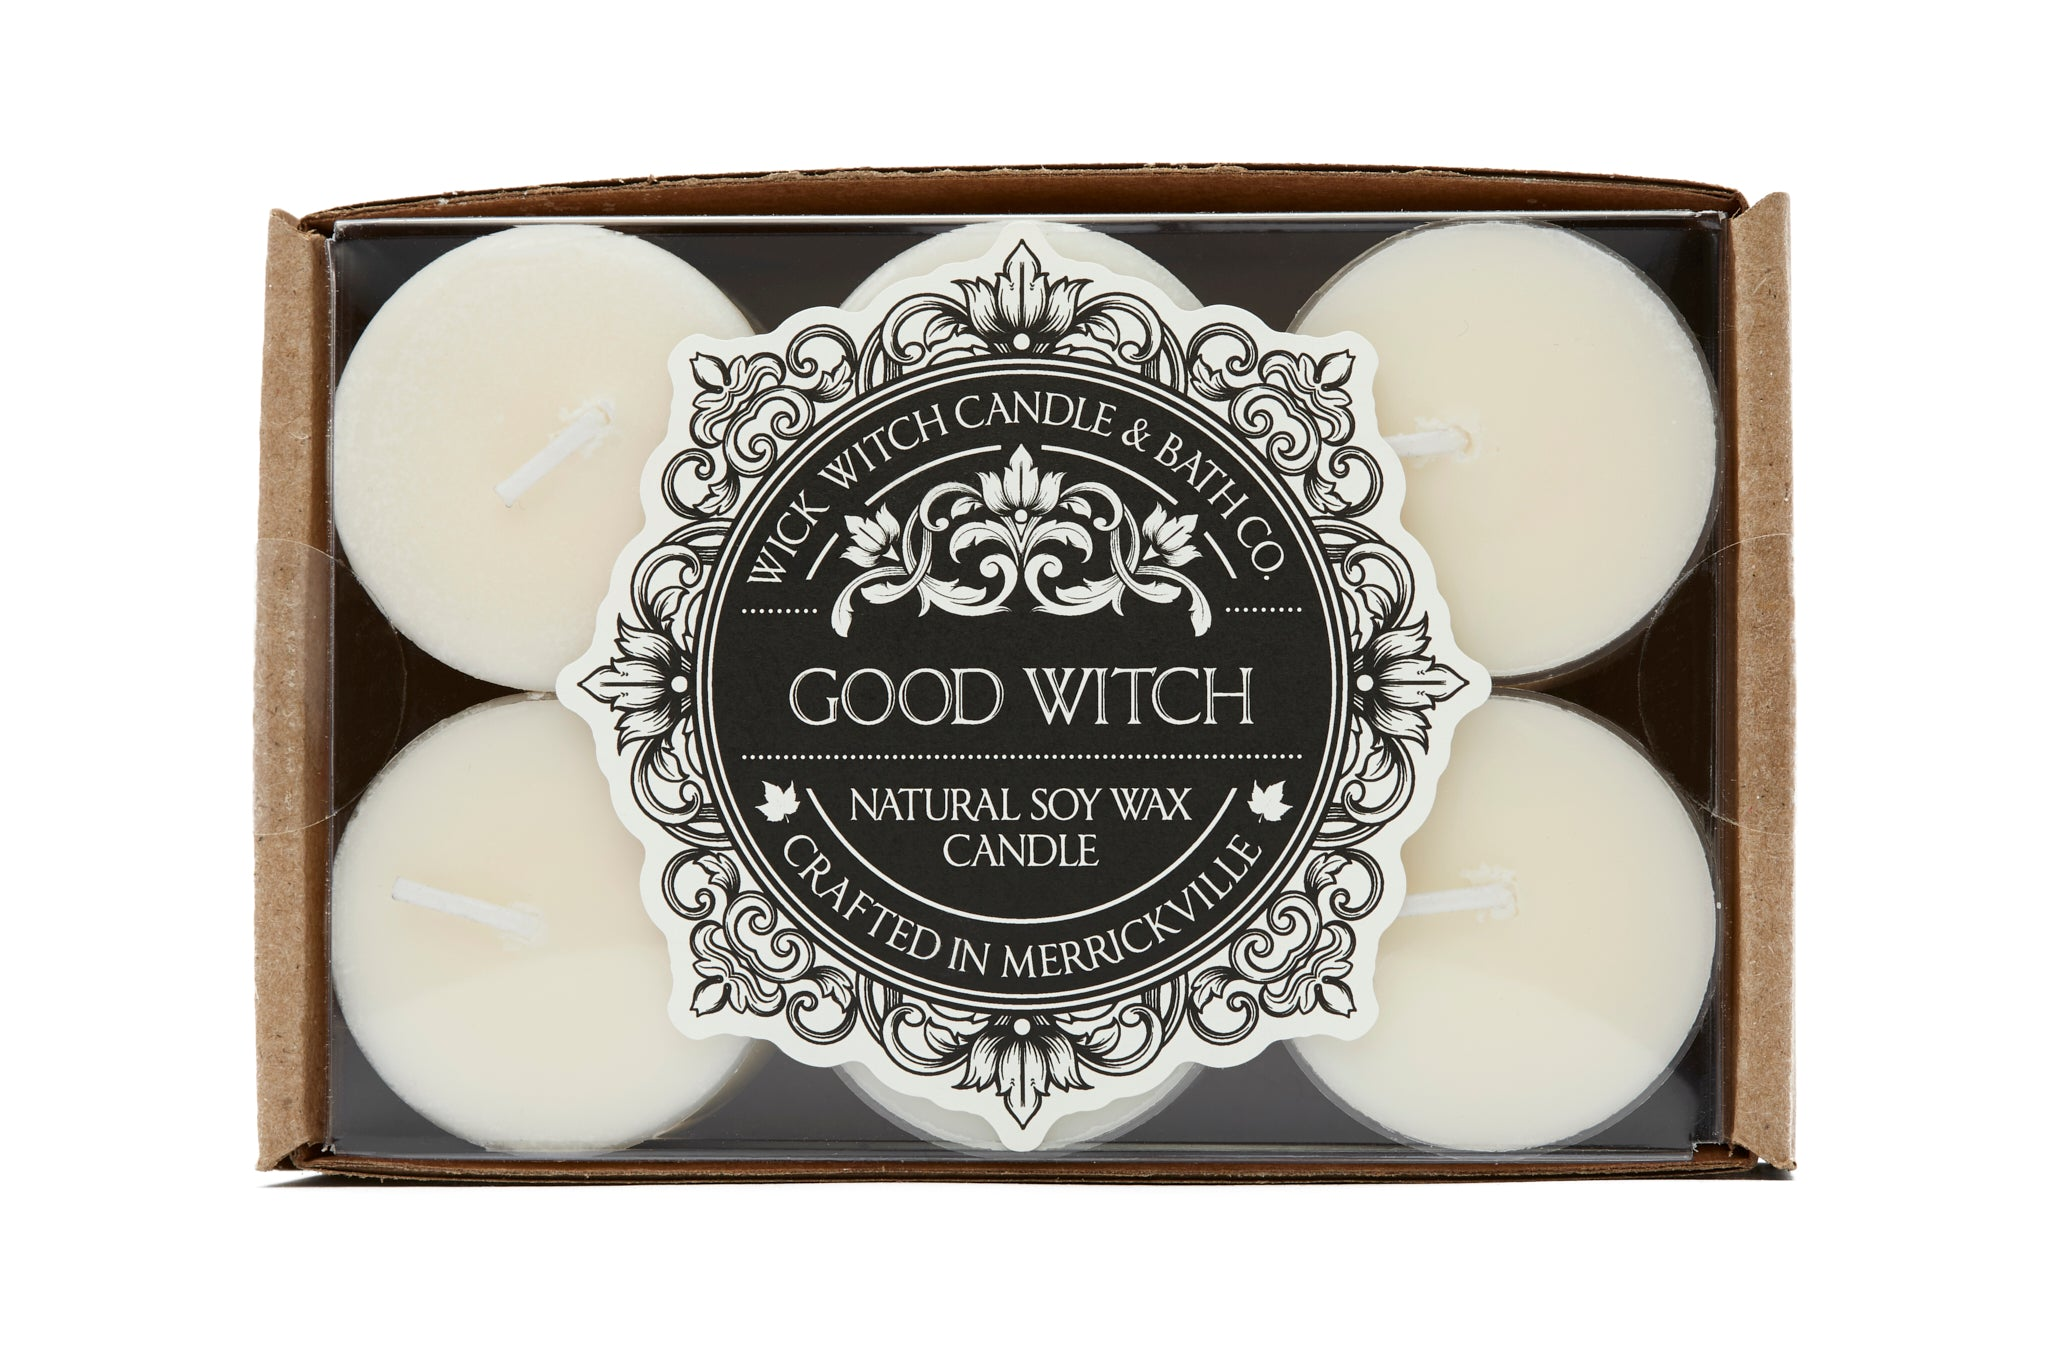 GOOD WITCH 12PK TEALIGHT